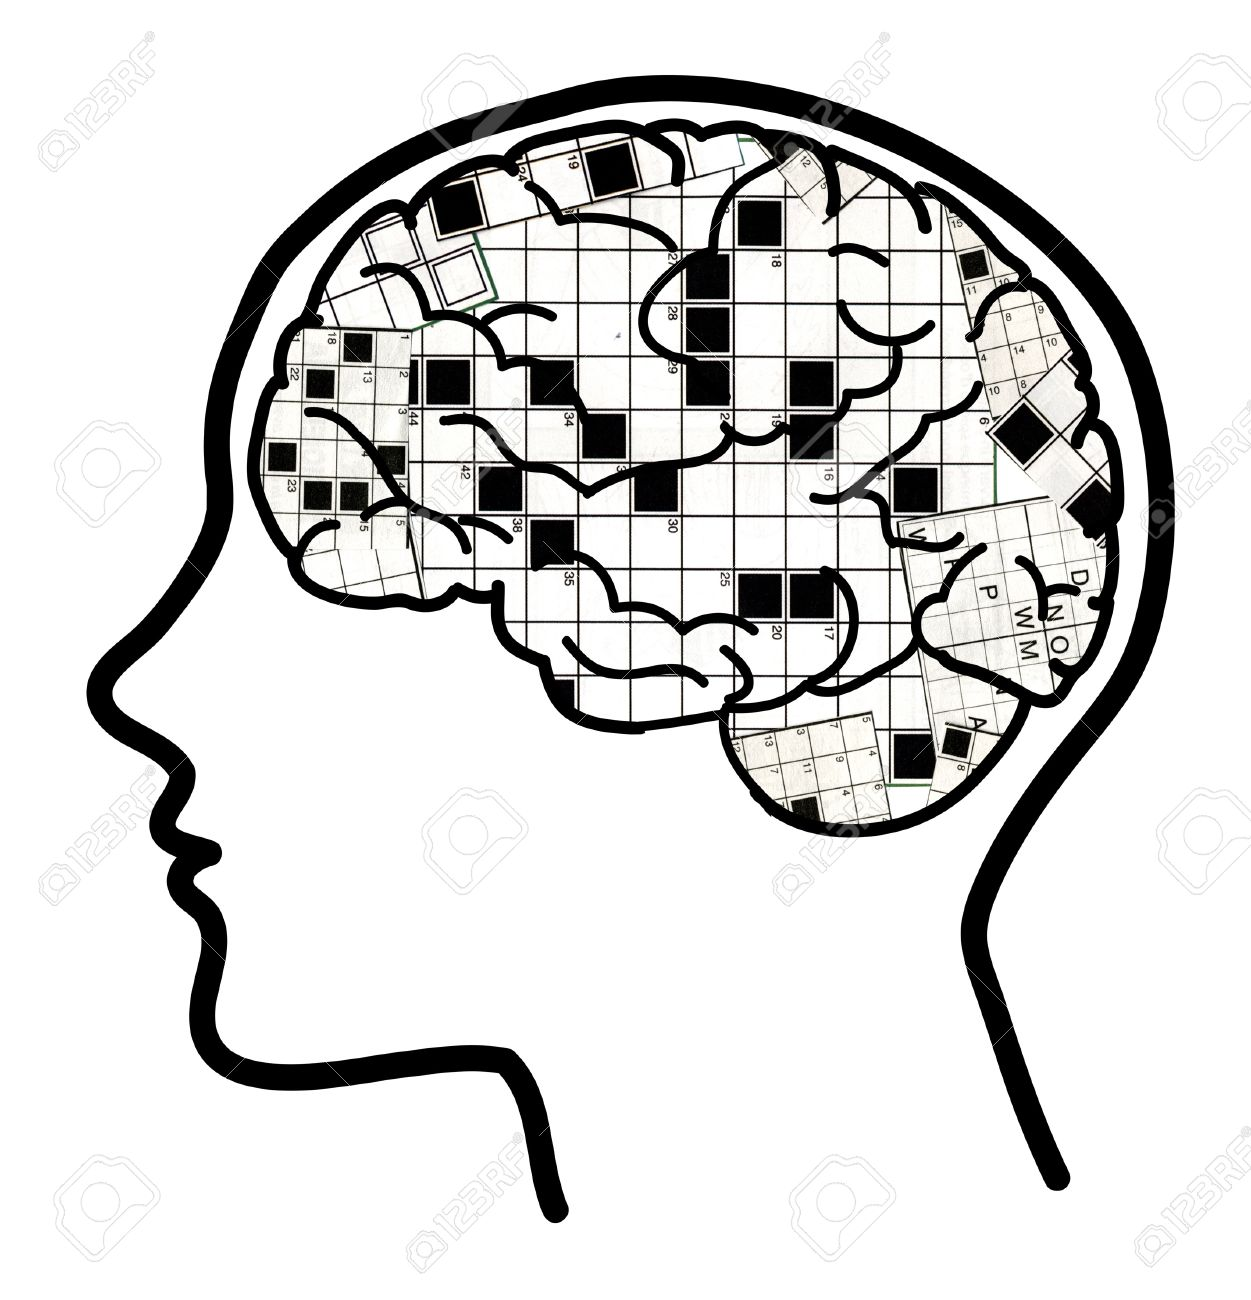 1251x1300 Profile Of A Man With Visible Brain And Crosswords Stock Photo